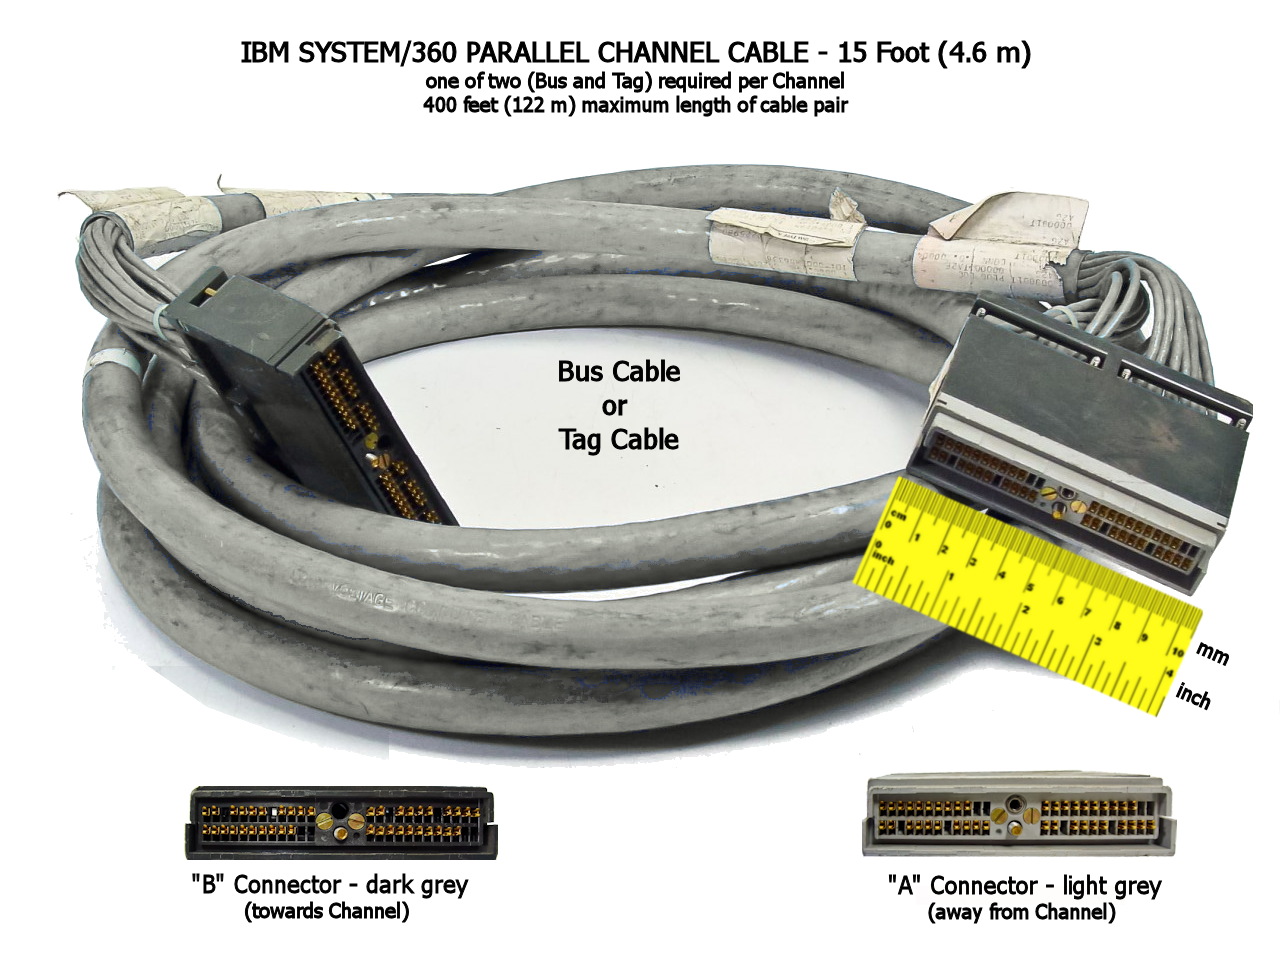 IBM_360_Bus_Tag_Cables.png